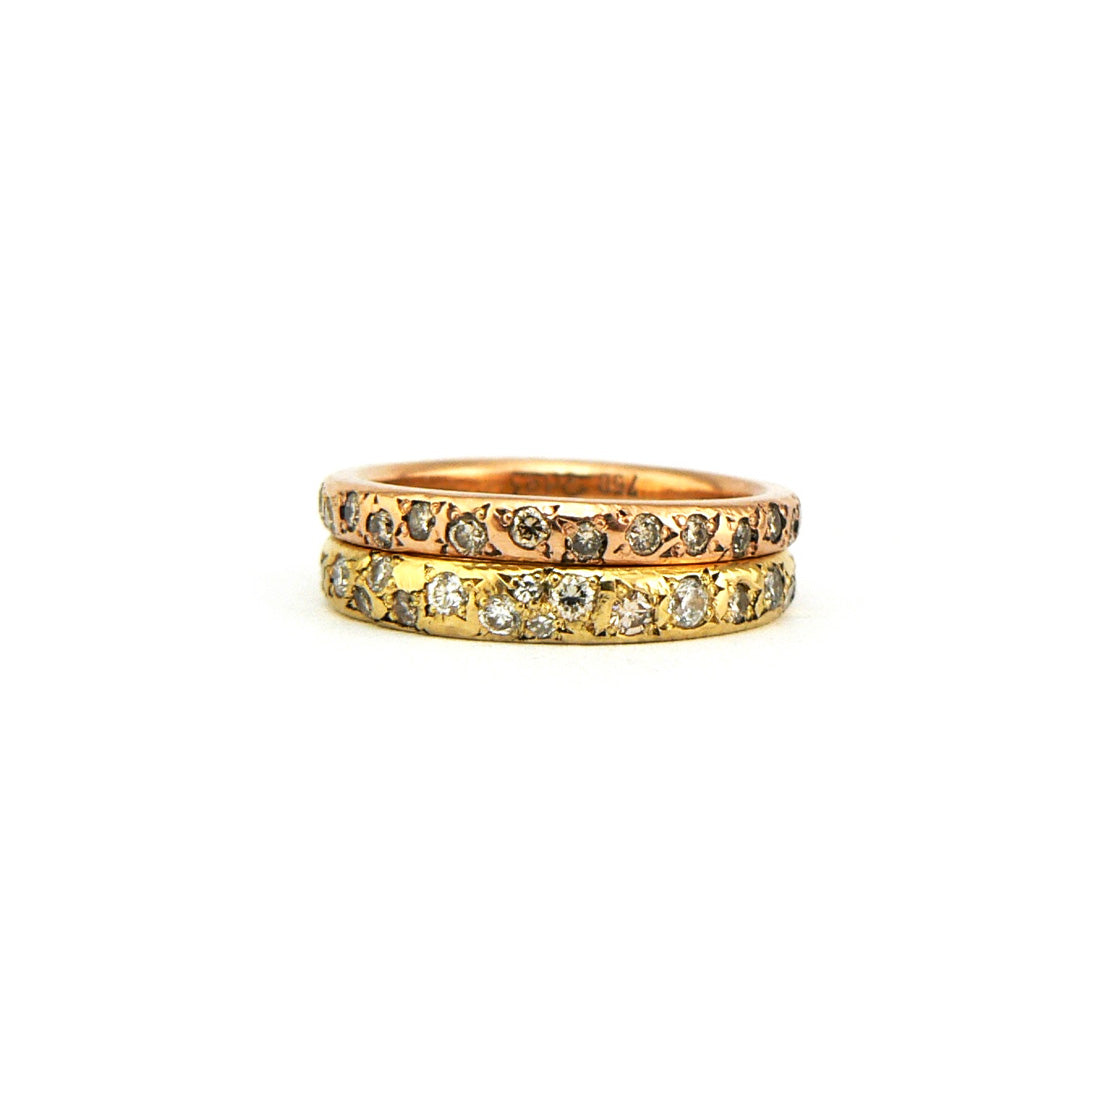 Delicate women's wedding band with diamonds